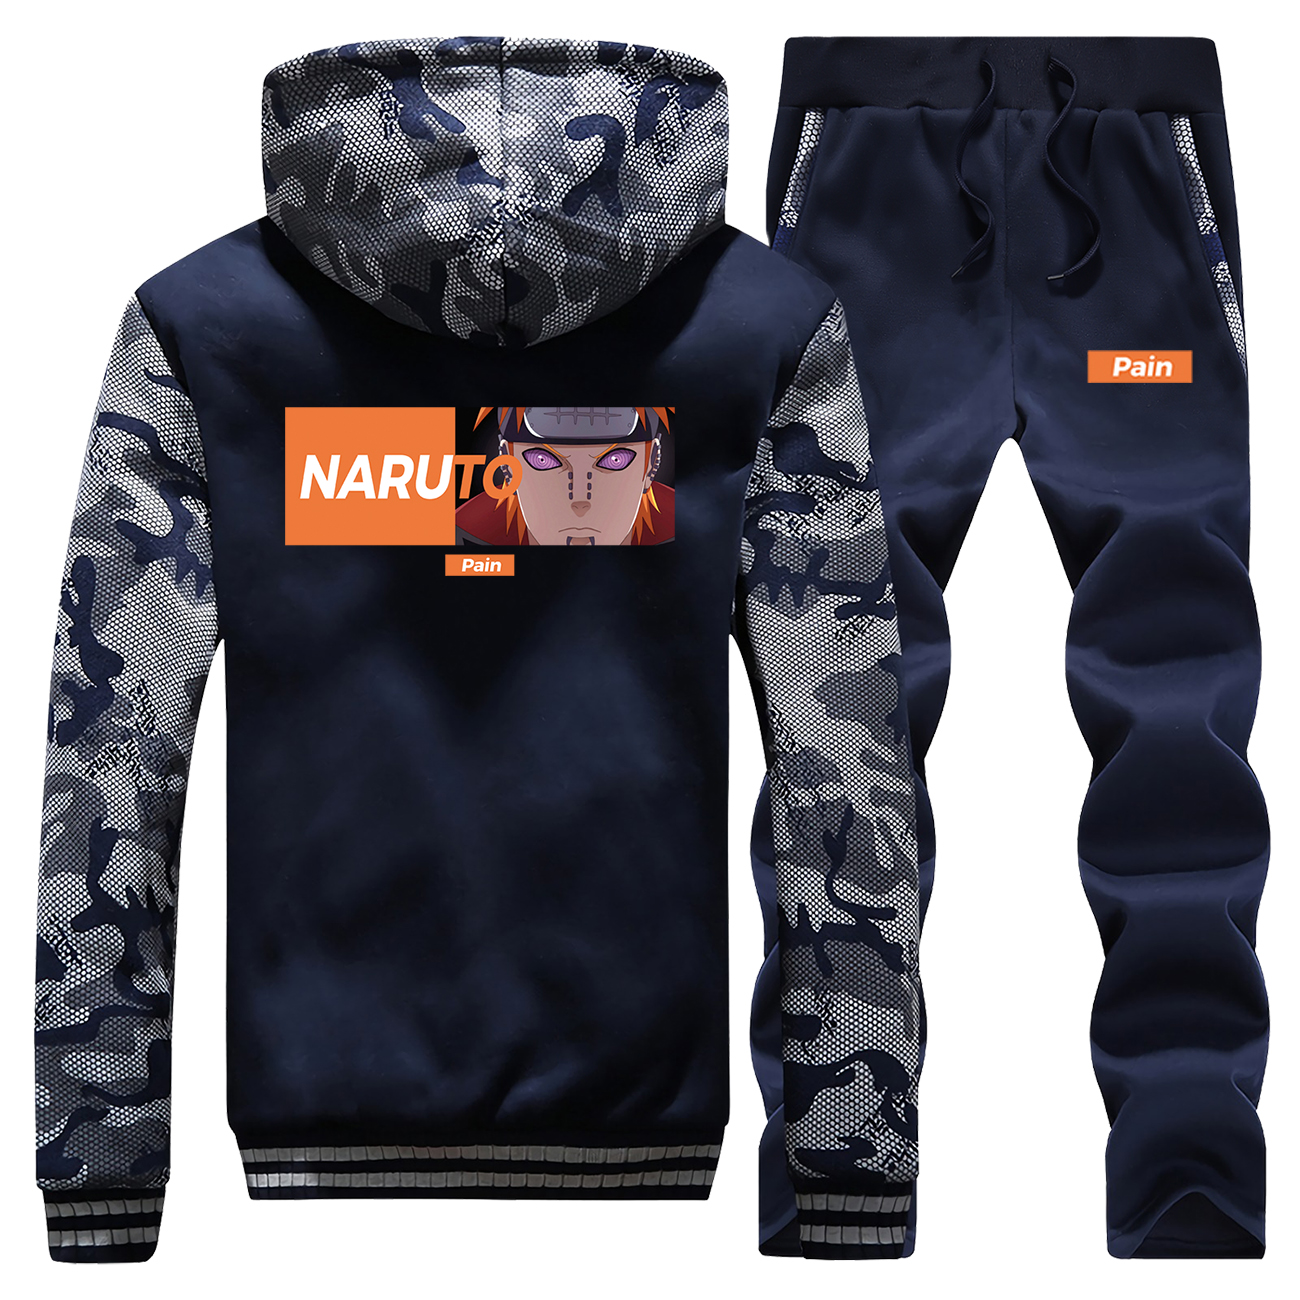 Camouflage Hoodies Men Fashion Japanese Streetwear Naruto Harajuku Tracksuit Mens Thick Jacket+Pant 2PCS Sets Male Warm Suit